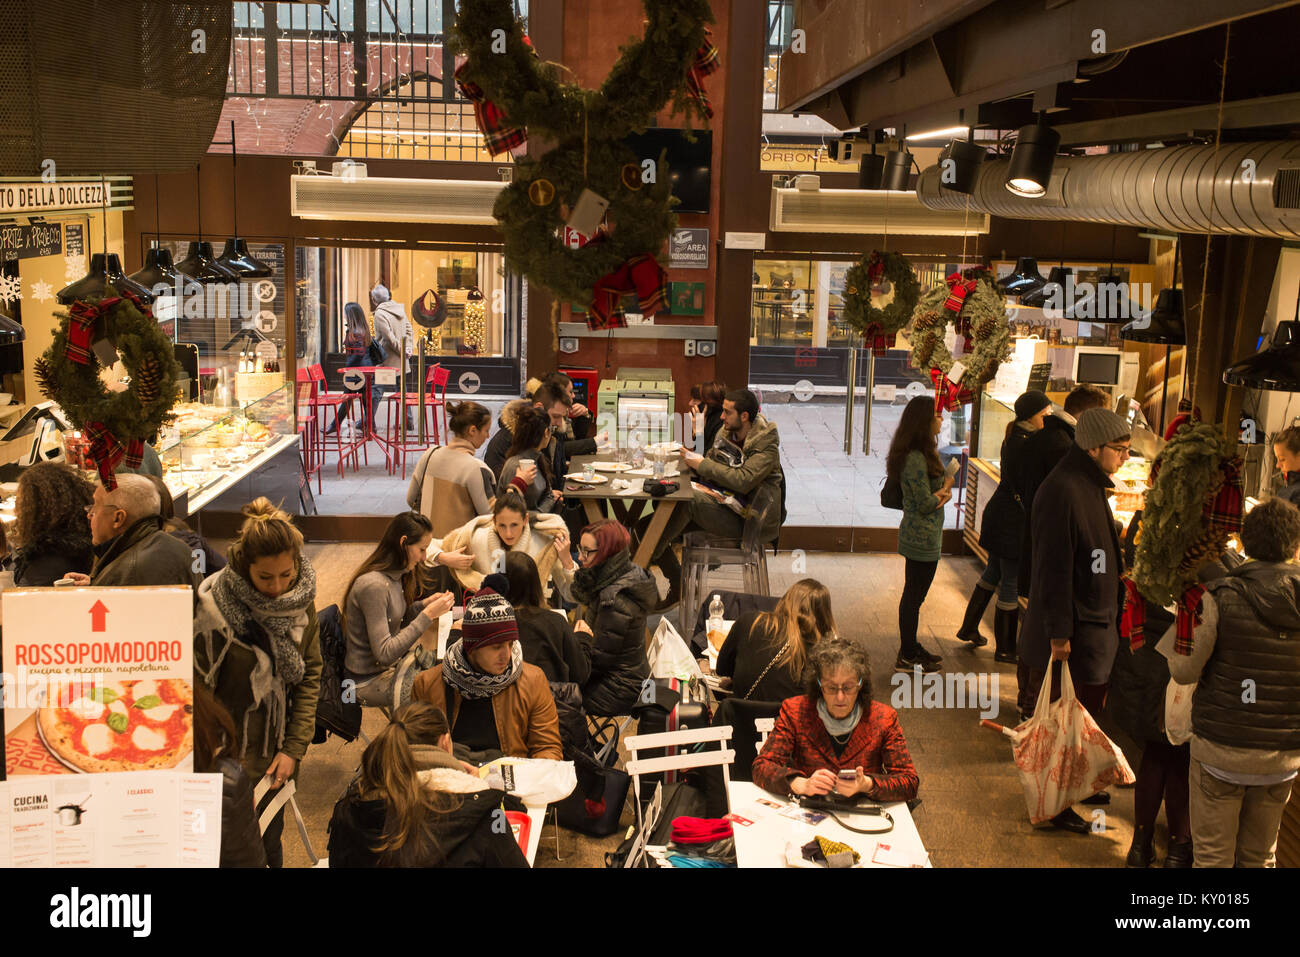 Bologna, Italy - December 2017: People eating in Mercato di Mezzo (The Middle Market) a famous indoor food market - Stock Image